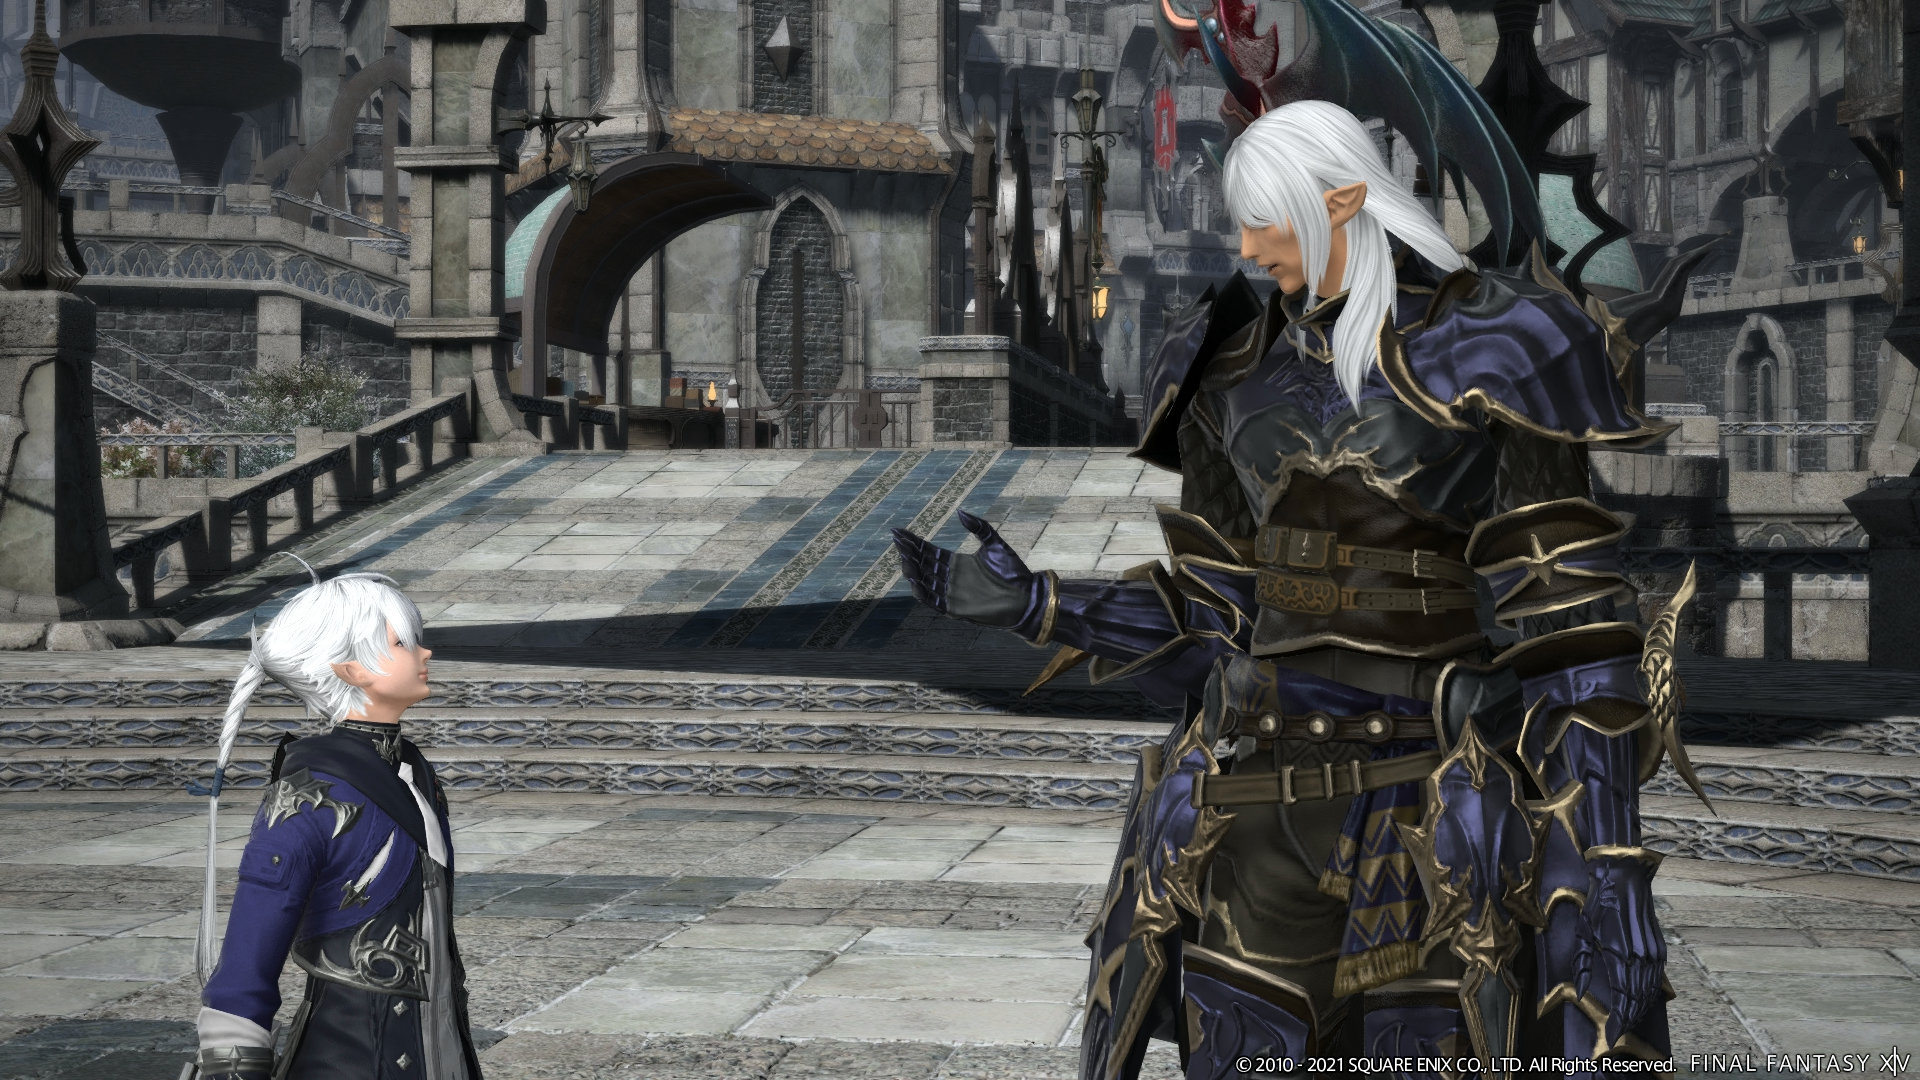 Two elf-like men, called Elezen, stand talking to each other. On the left is Alphinaud Leveilleur, dressed in blue robes with white hair tied back in a braided ponytail. On the right is Estinien Wyrmblood, the former Azure Dragoon, with long white flowing locks and donning dark dragoon armor.